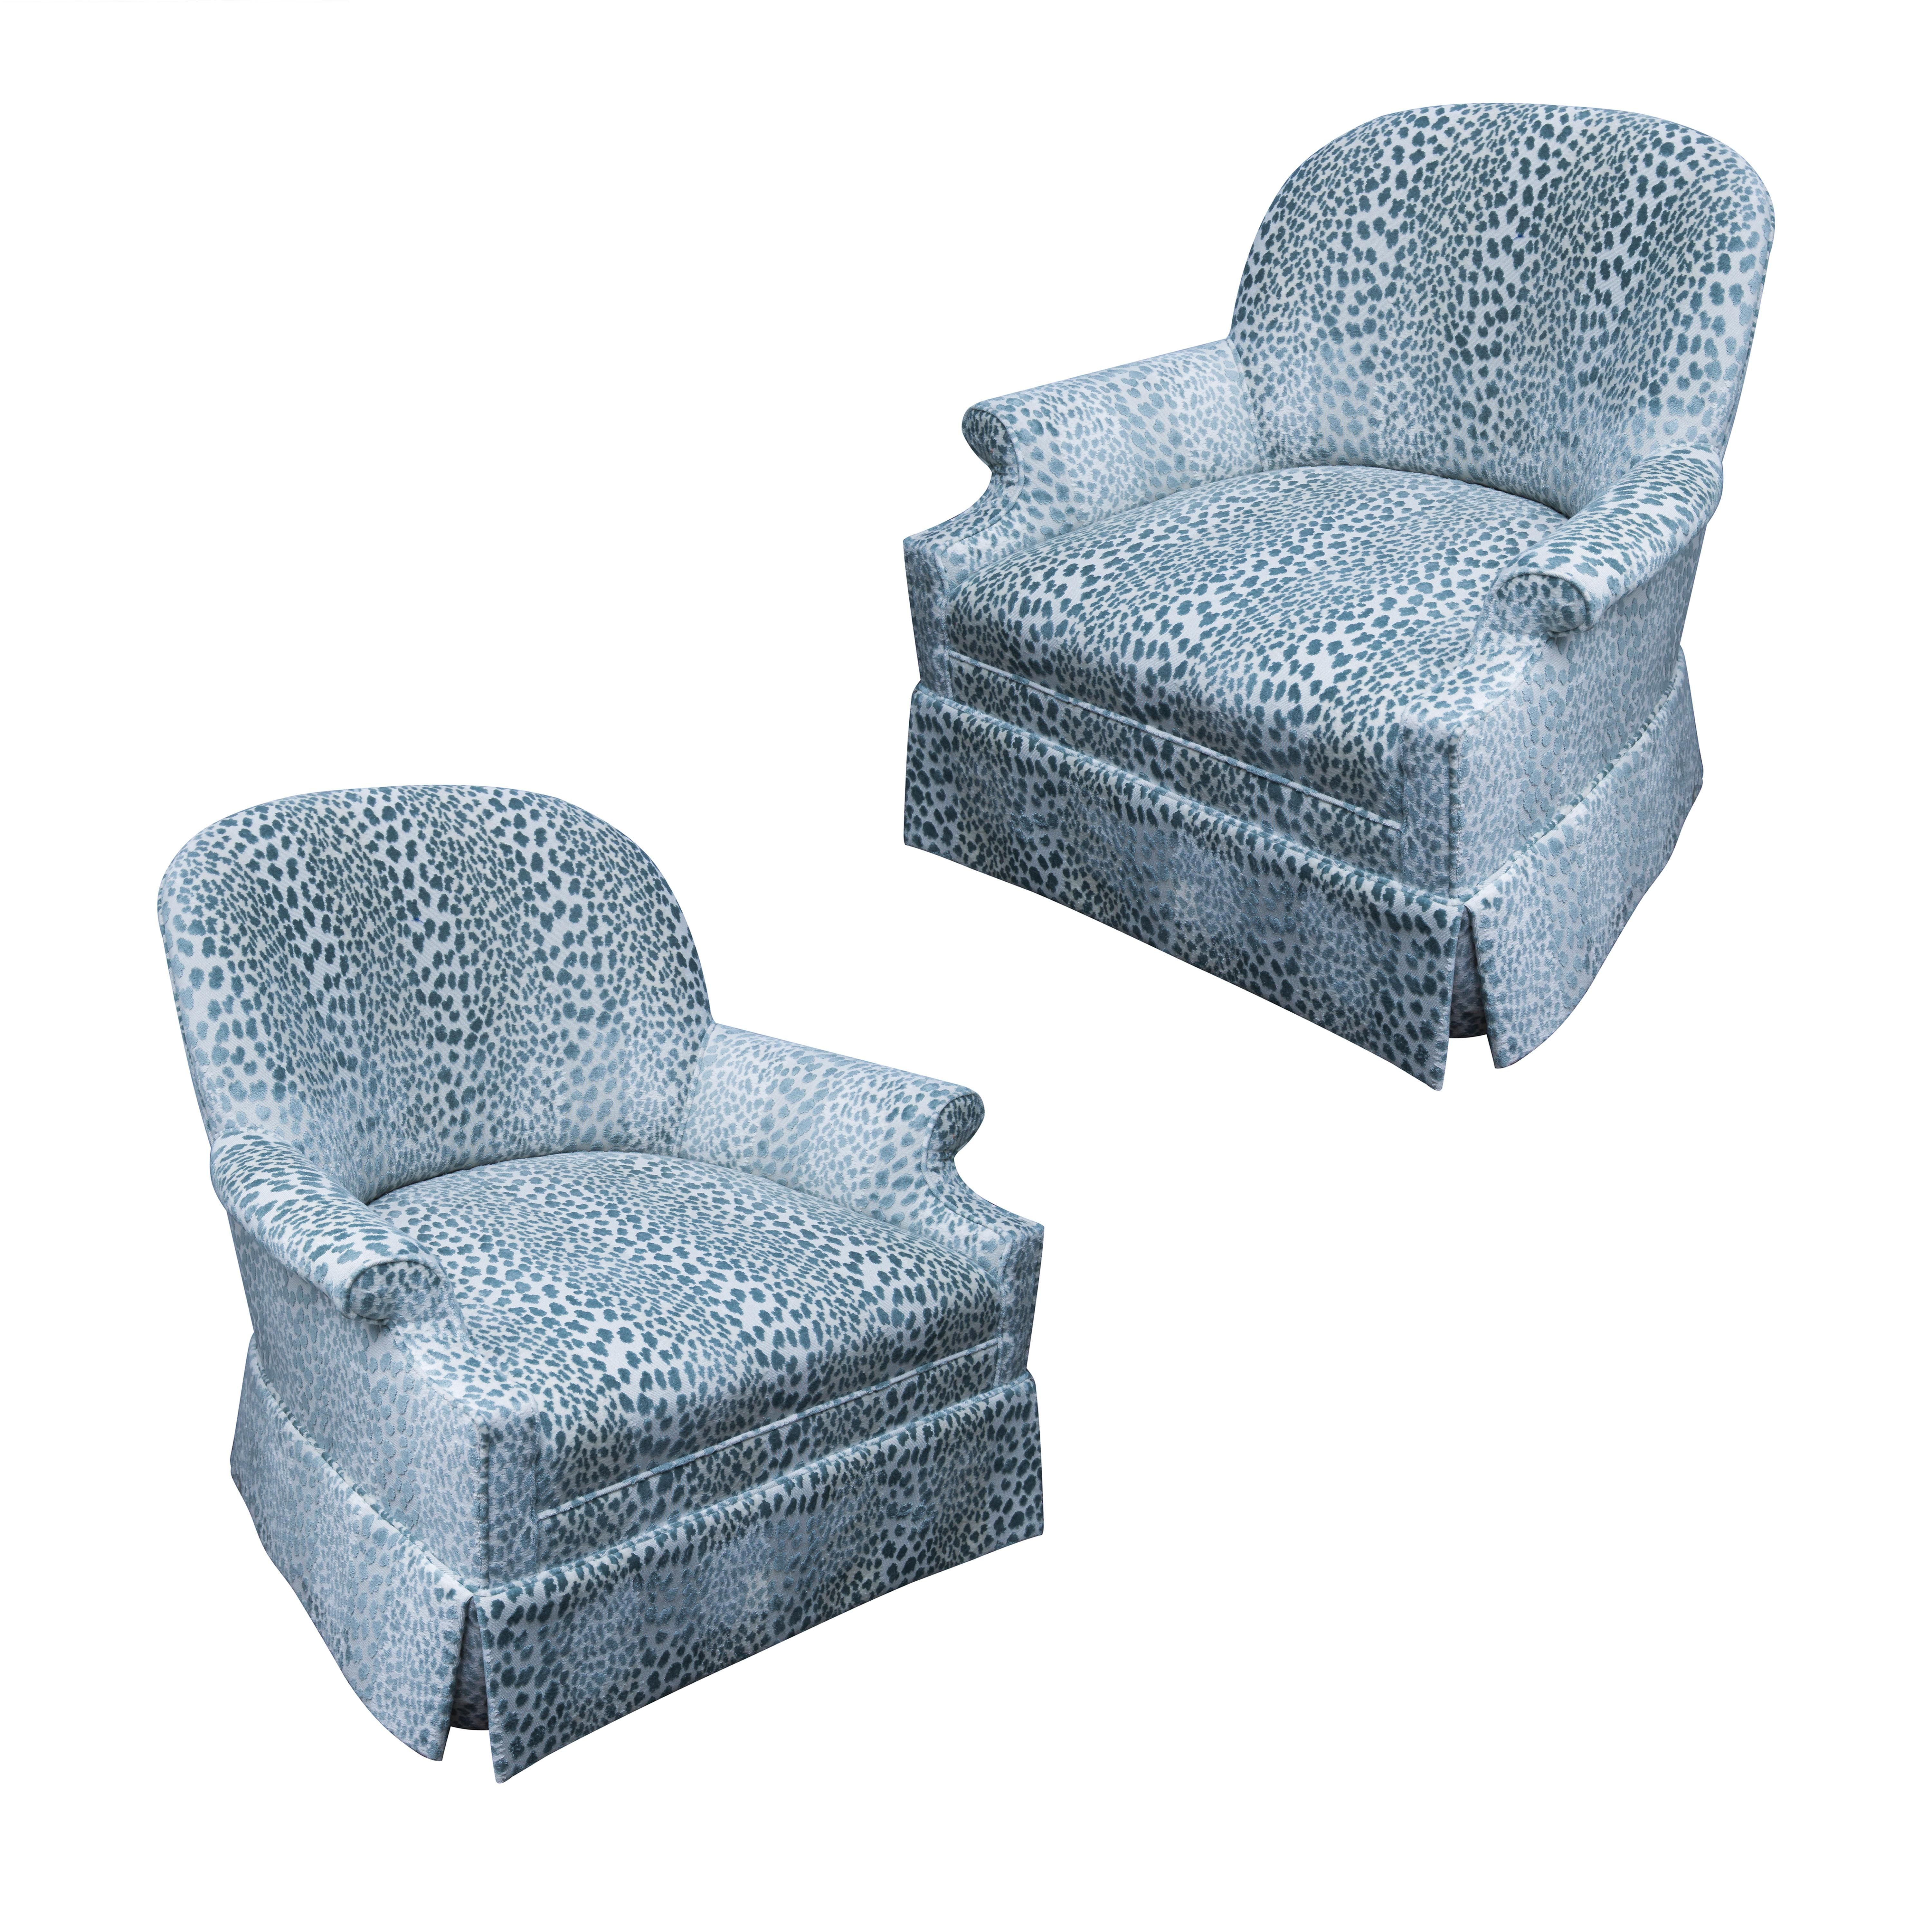 Kravet Upholstered Lounge Swivel Chairs   A Pair For Sale